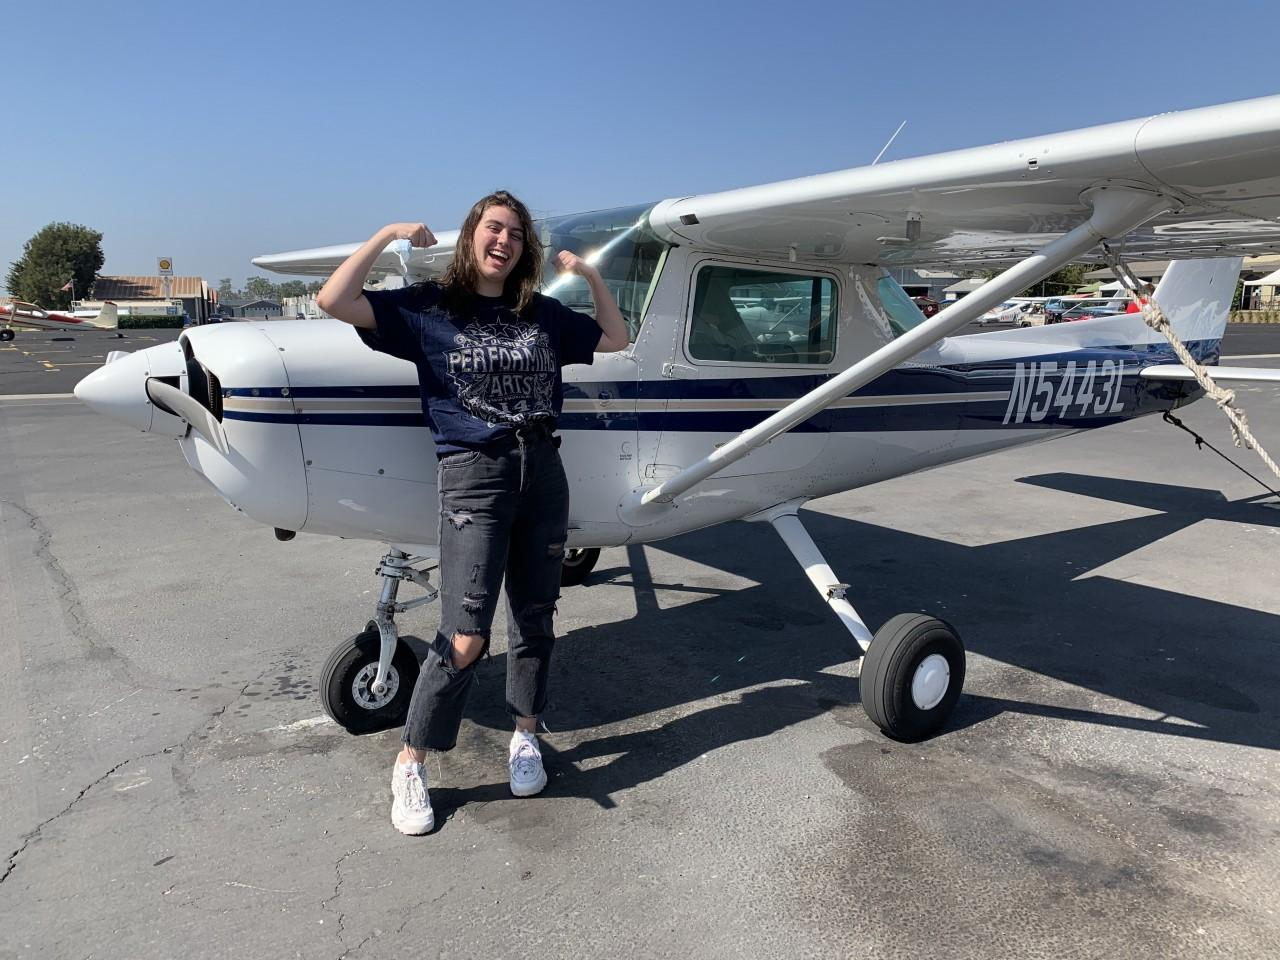 First Solo - Taylor Via!